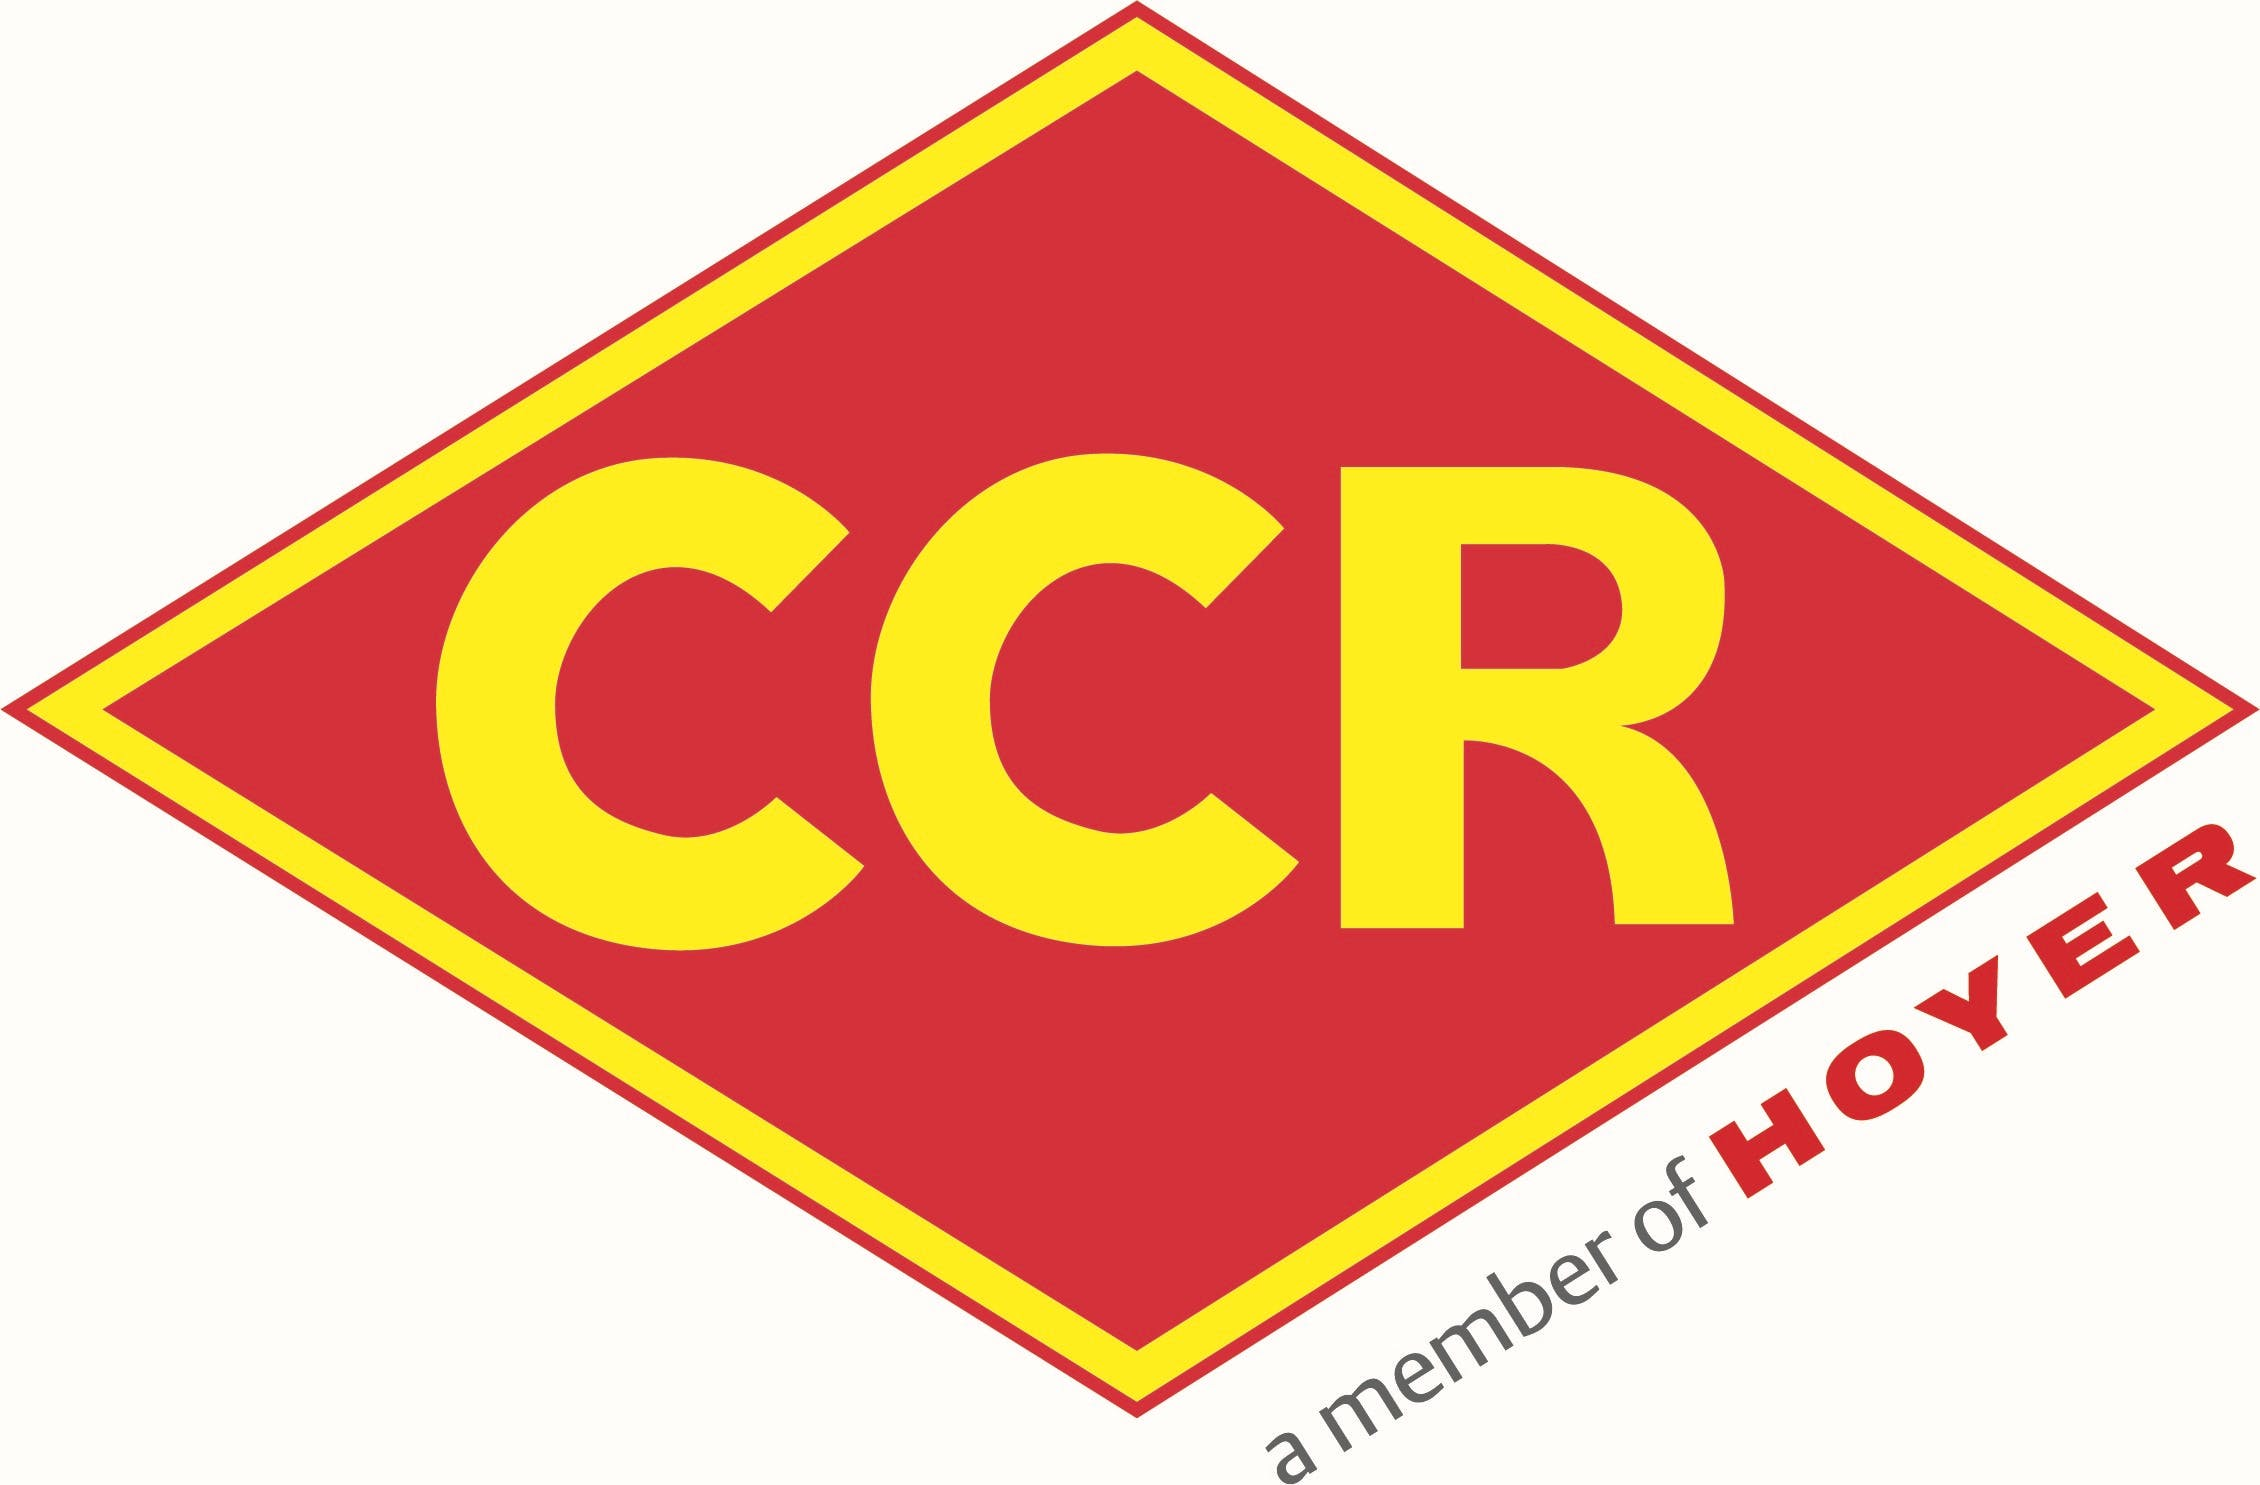 CCR Containers